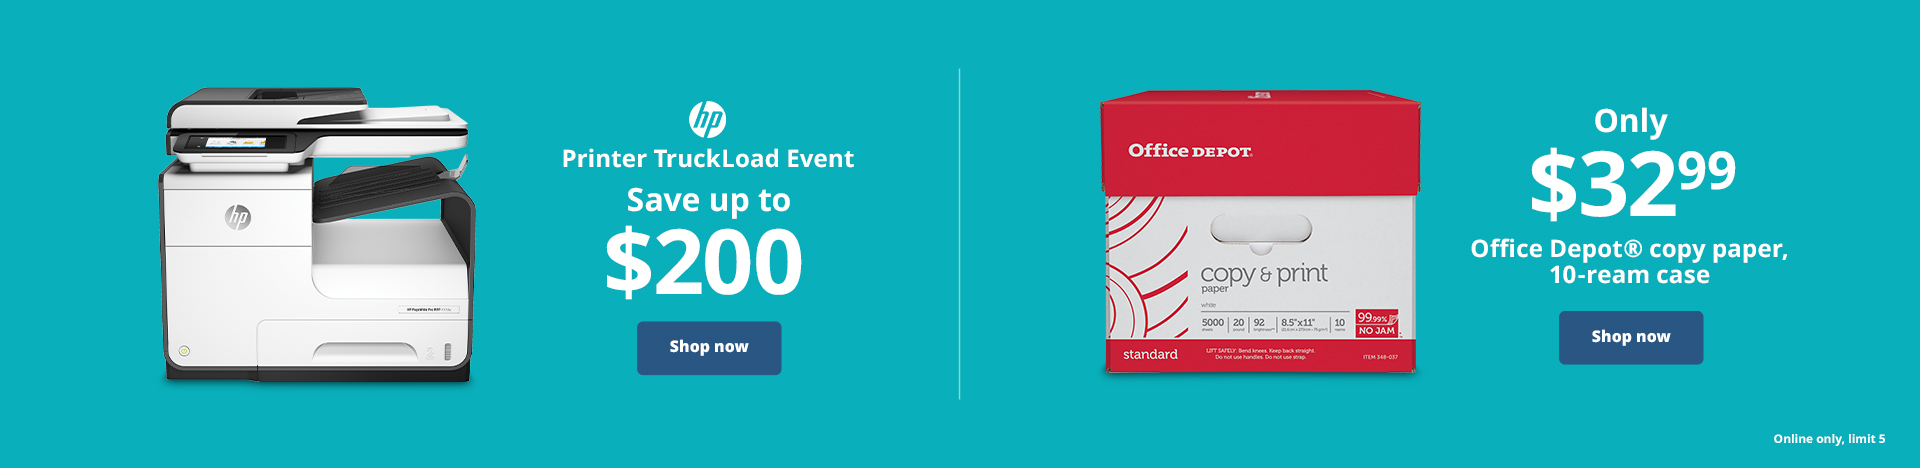 HP Printer Truck Load Event - Save up to $200 | Only $32.99 Office Depot® copy paper, 10-ream case. online only limit 5